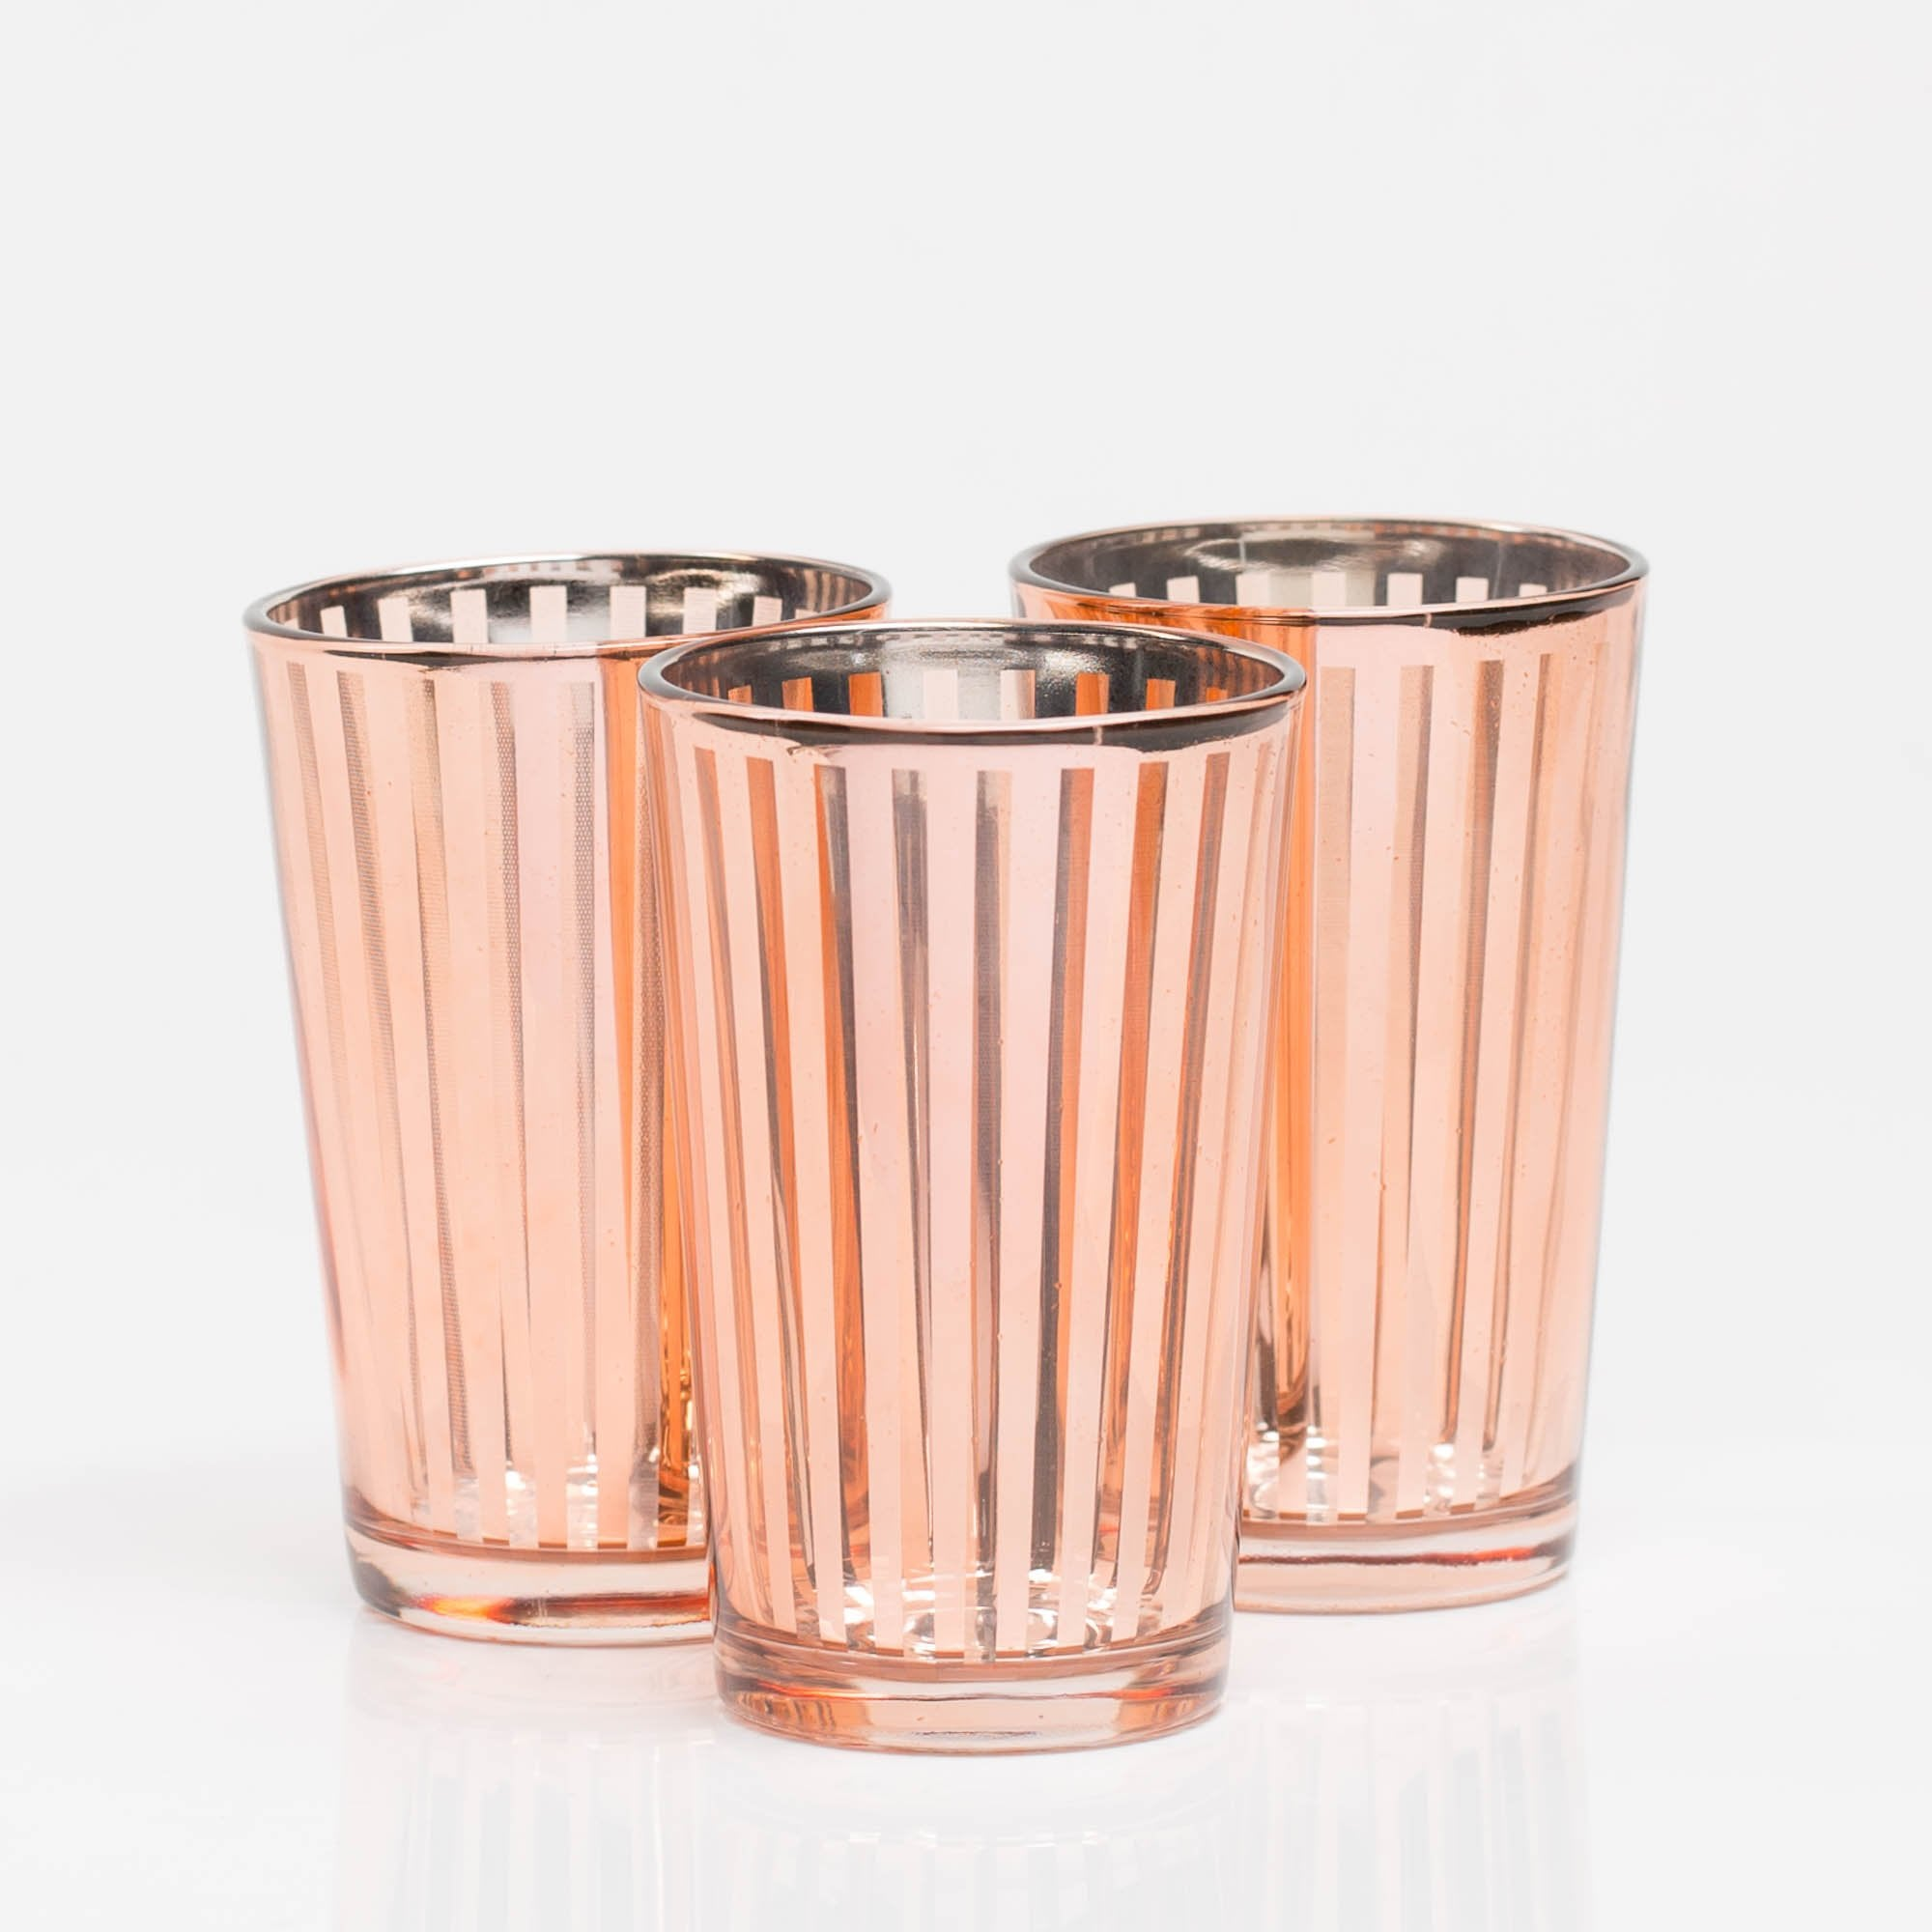 Richland Rose Gold Stripe Glass Holder - Large Set of 48